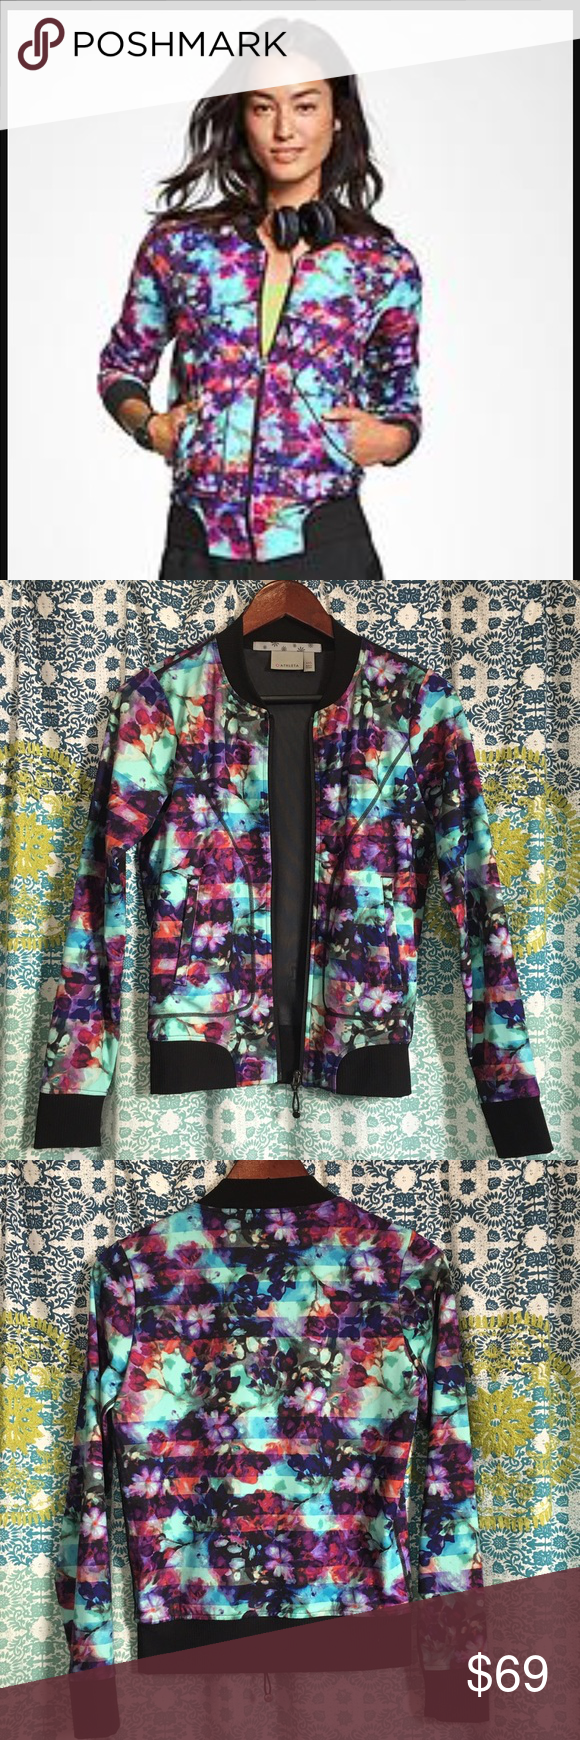 "Athleta ""Floral Fade Bombtastic"" Jacket EUC!! Size XXS but will fit up to a medium depending on how you like your fit. I like this fitted with a black tank underneath and jeans. Compliments galore! Selling for $59 on Merc!   In EUC!!  Firm price  No trades Athleta Jackets & Coats"